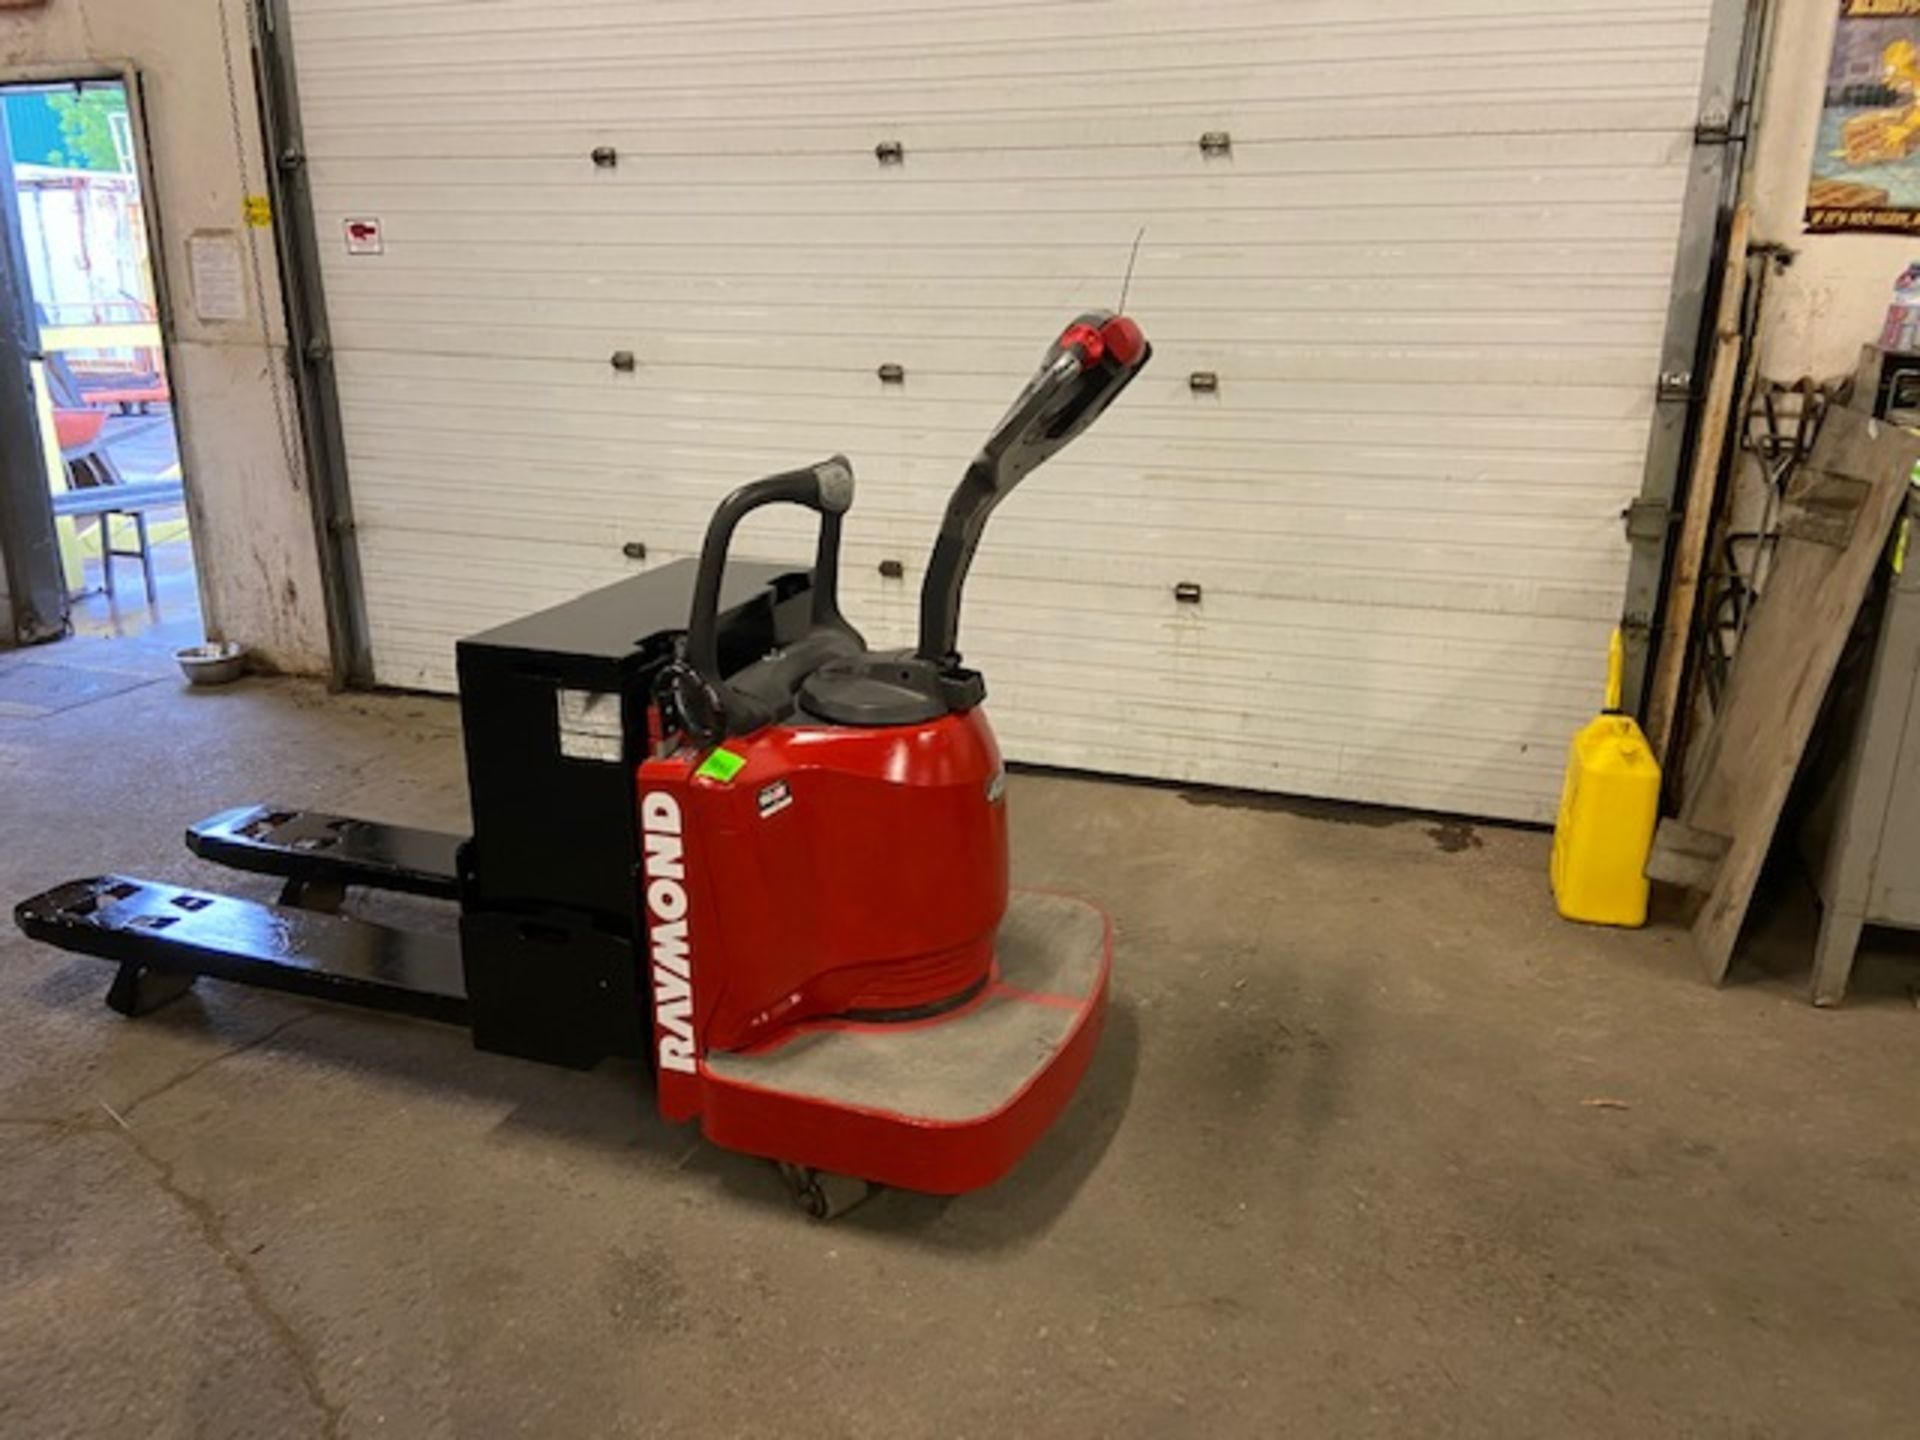 Raymond Electric Ride on Powered Pallet Cart Lift 6000lbs capacity 4' Long with LOW HOURS - Image 3 of 3